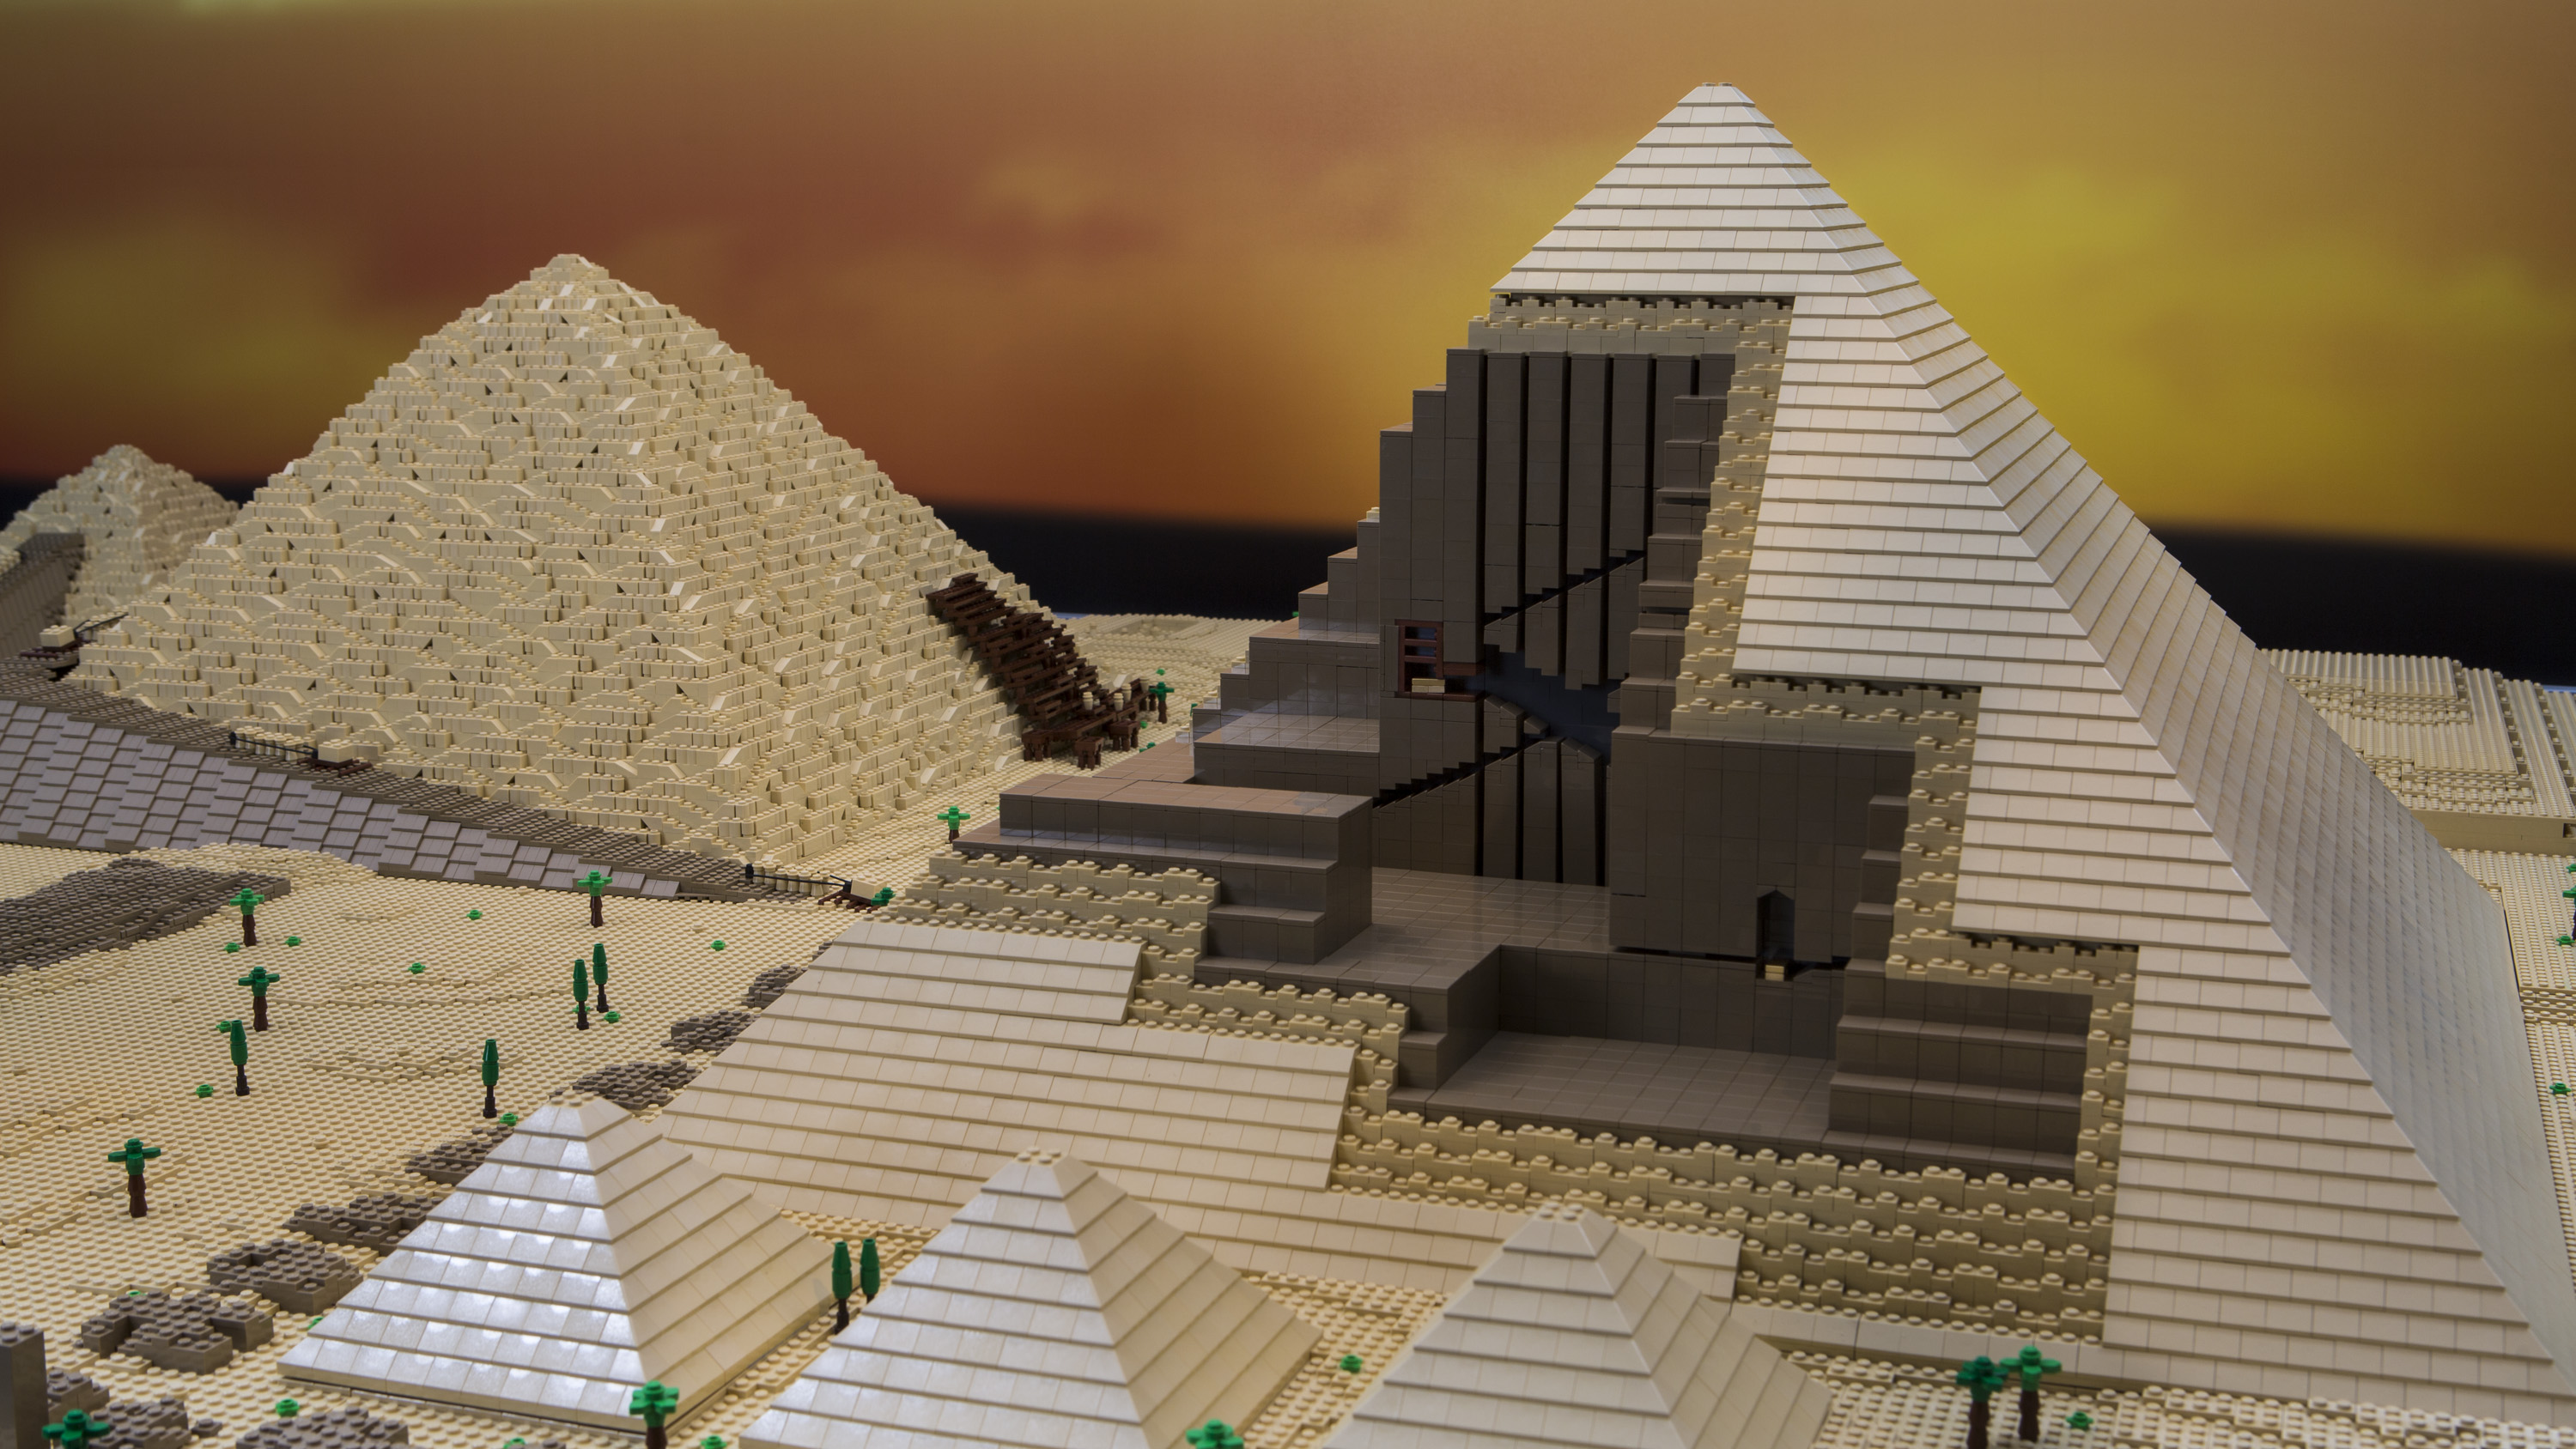 Egyptian Pyramid Architecture great pyramid of giza | architect magazine | brickbrick at the